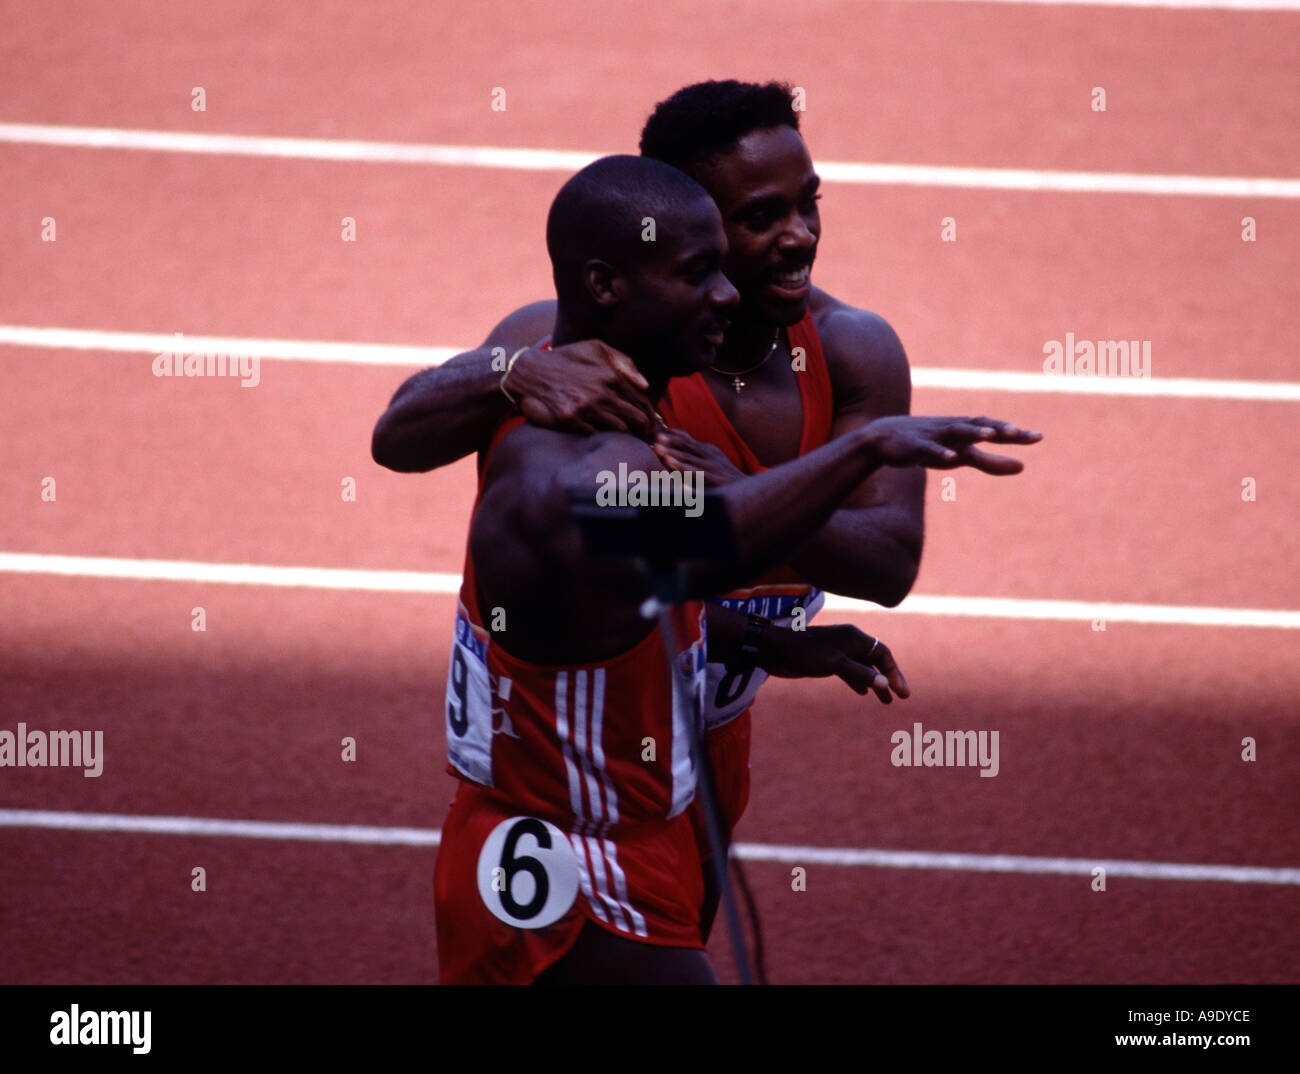 Ben Johnson Canada wins 100 metres Seoul Olympics Korea in 1988 before failing a drugs test and being banned. - Stock Image